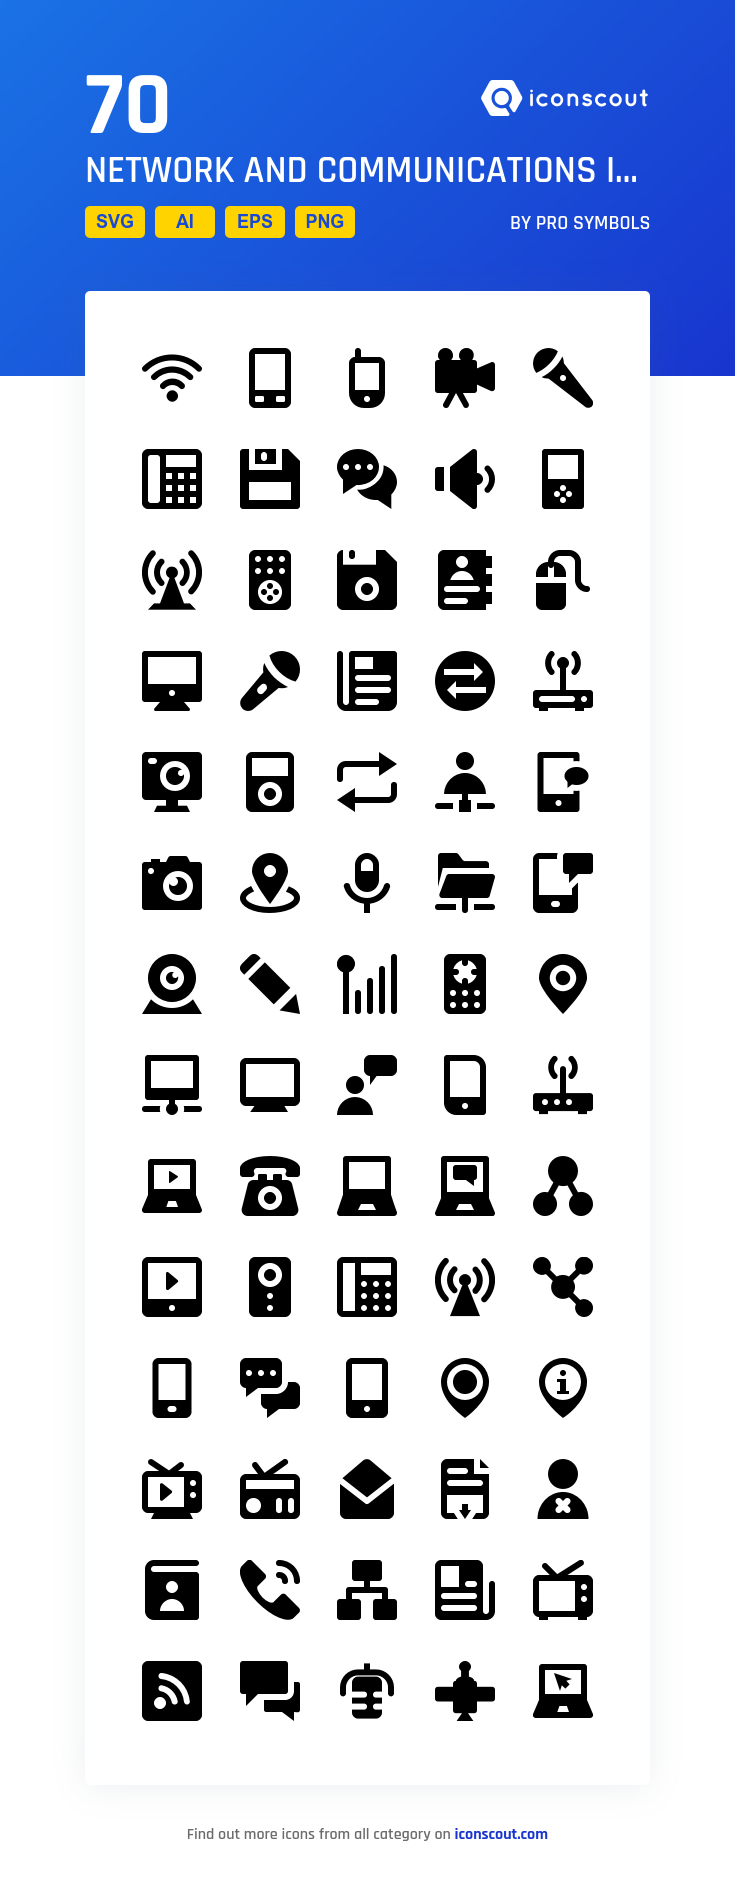 Download Network And Communications Icon Pack Available In Svg Png Eps Ai Icon Fonts Glyph Icon Communication Icon Icon